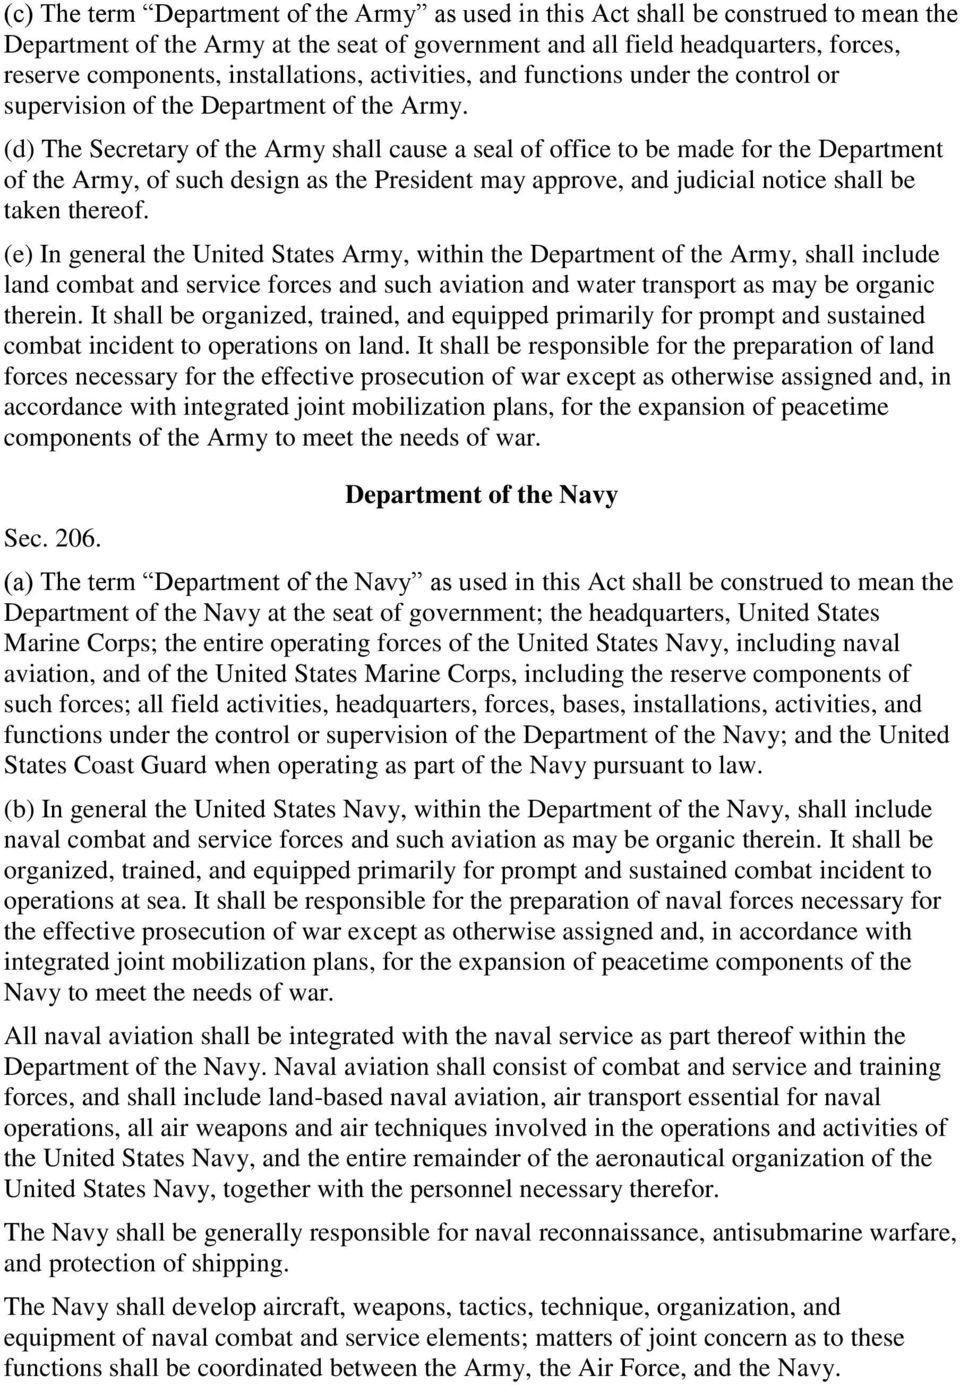 (d) The Secretary of the Army shall cause a seal of office to be made for the Department of the Army, of such design as the President may approve, and judicial notice shall be taken thereof.